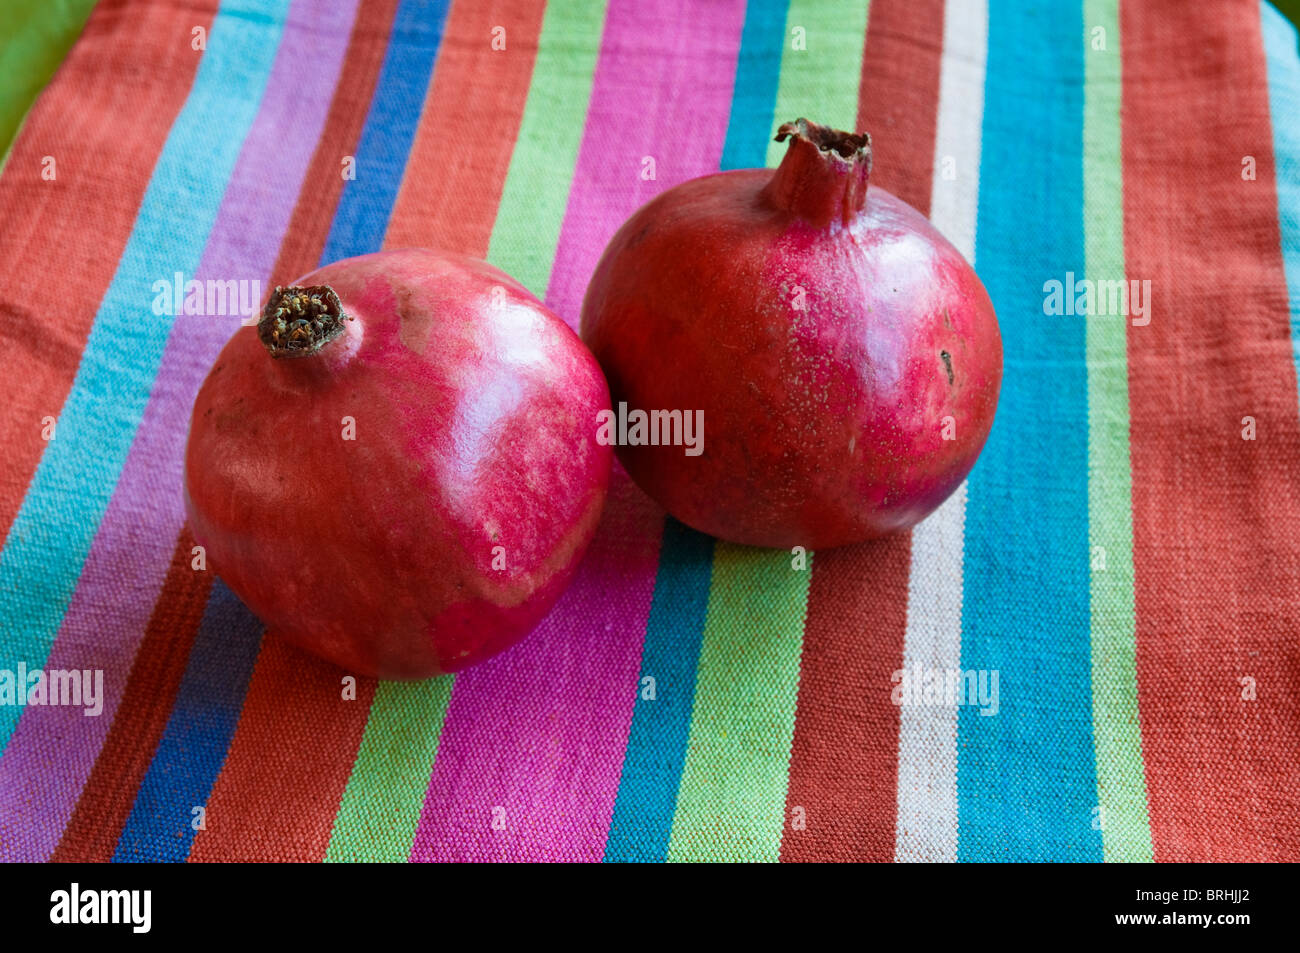 Pomegranate fruits with a colourful stripy cotton cloth background. - Stock Image